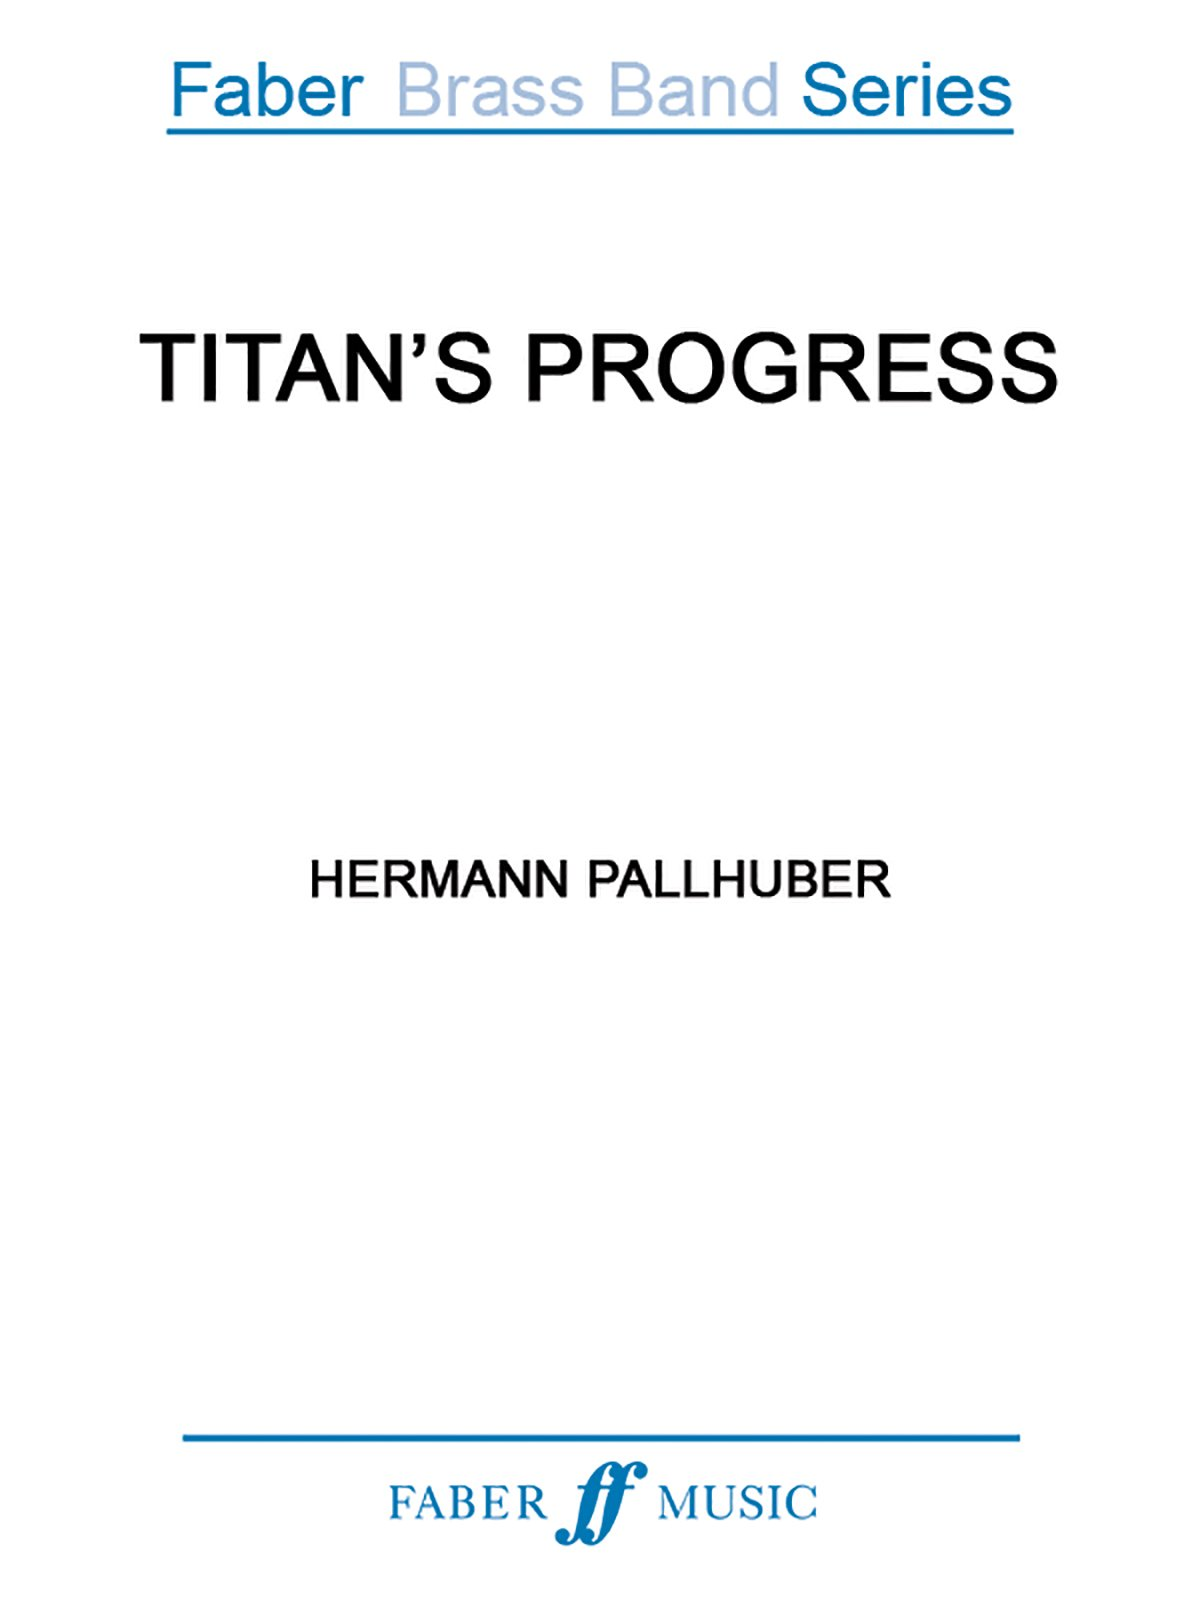 titan-s-progress-score-faber-edition-faber-brass-band-series